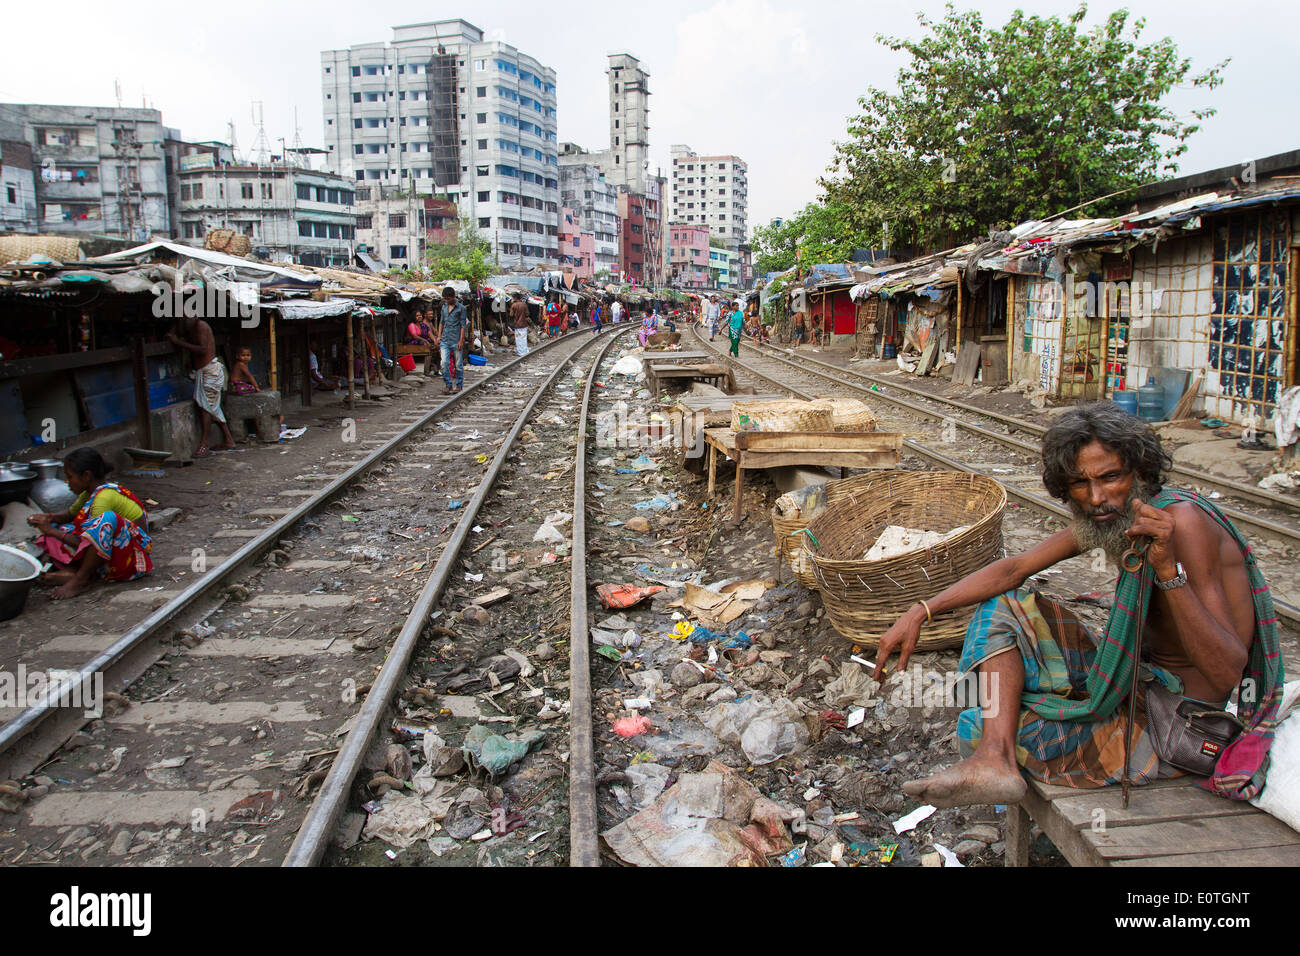 Bangladeshi people in shanty part of Dhaka along railroad living in extreme poverty. - Stock Image